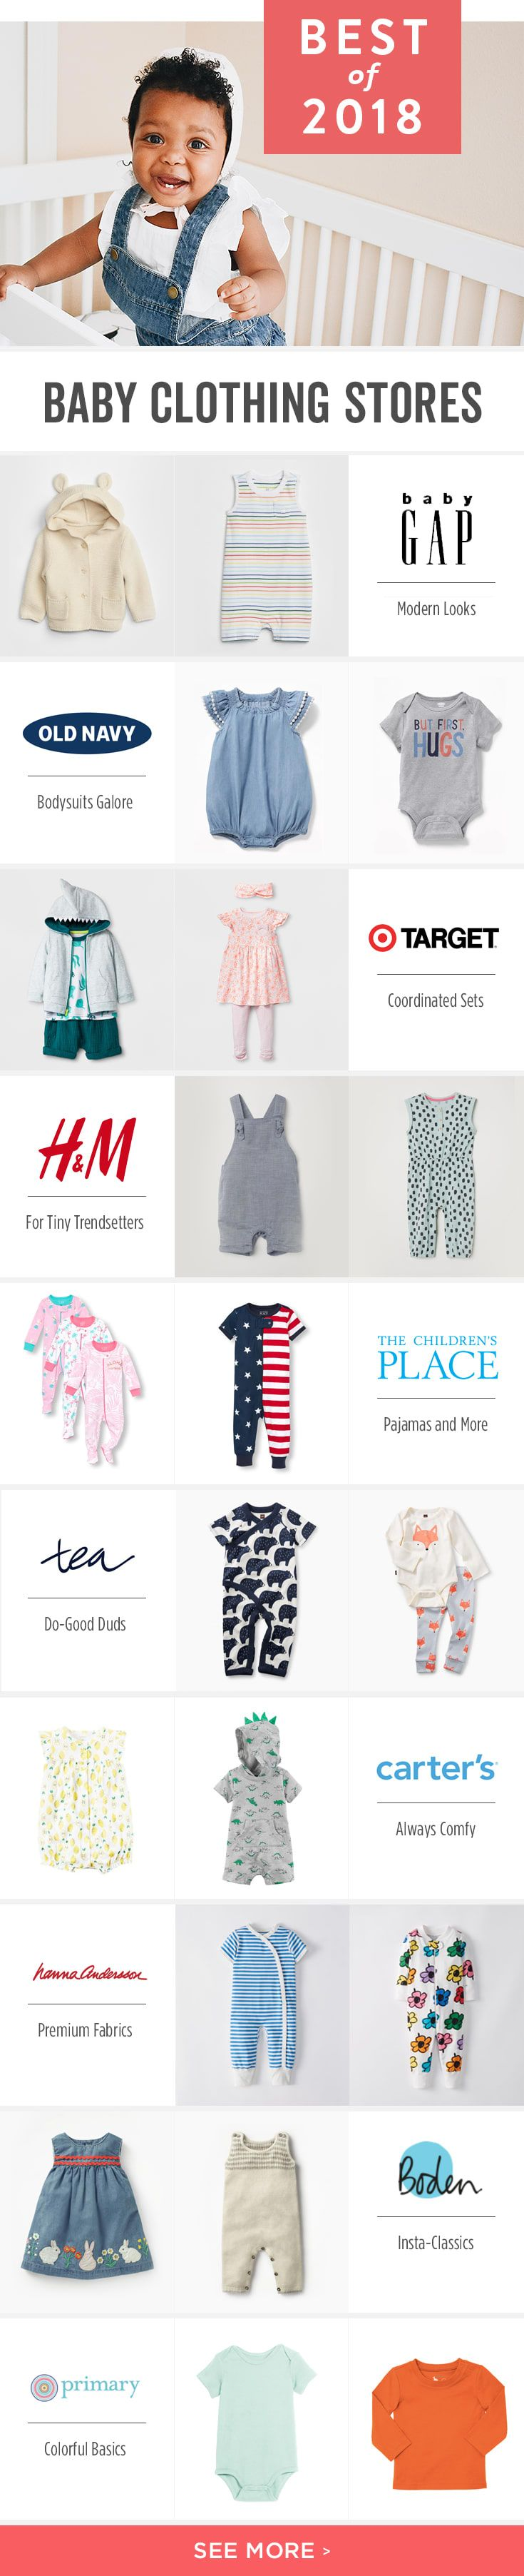 Best Baby Clothing Brands of 7  Online kids clothes, Childrens